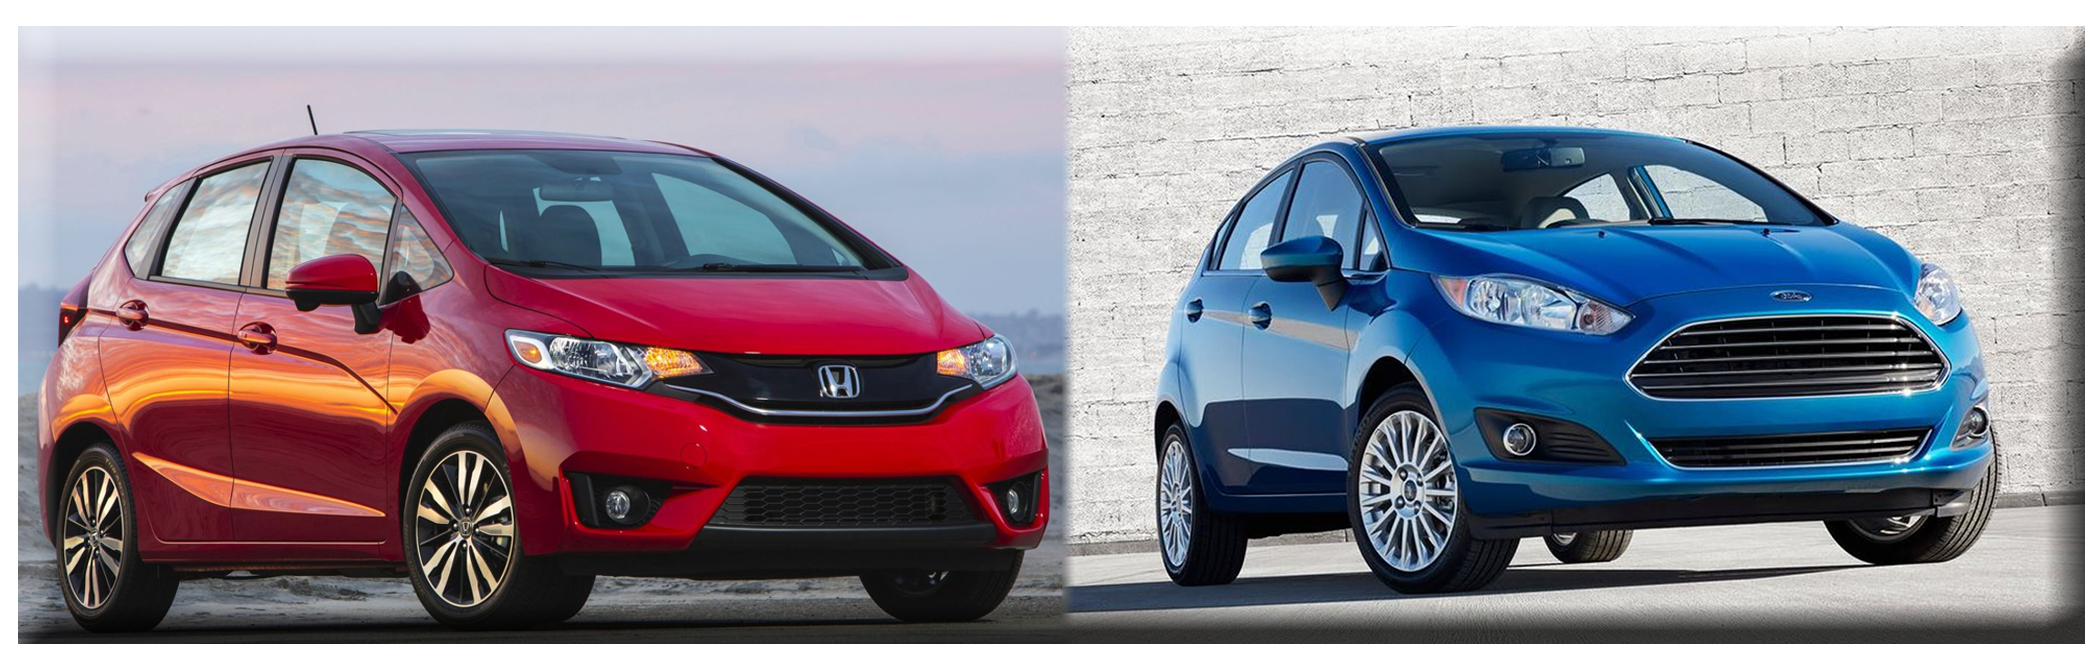 Nice 2015 Honda Fit Vs 2014 Ford Fiesta